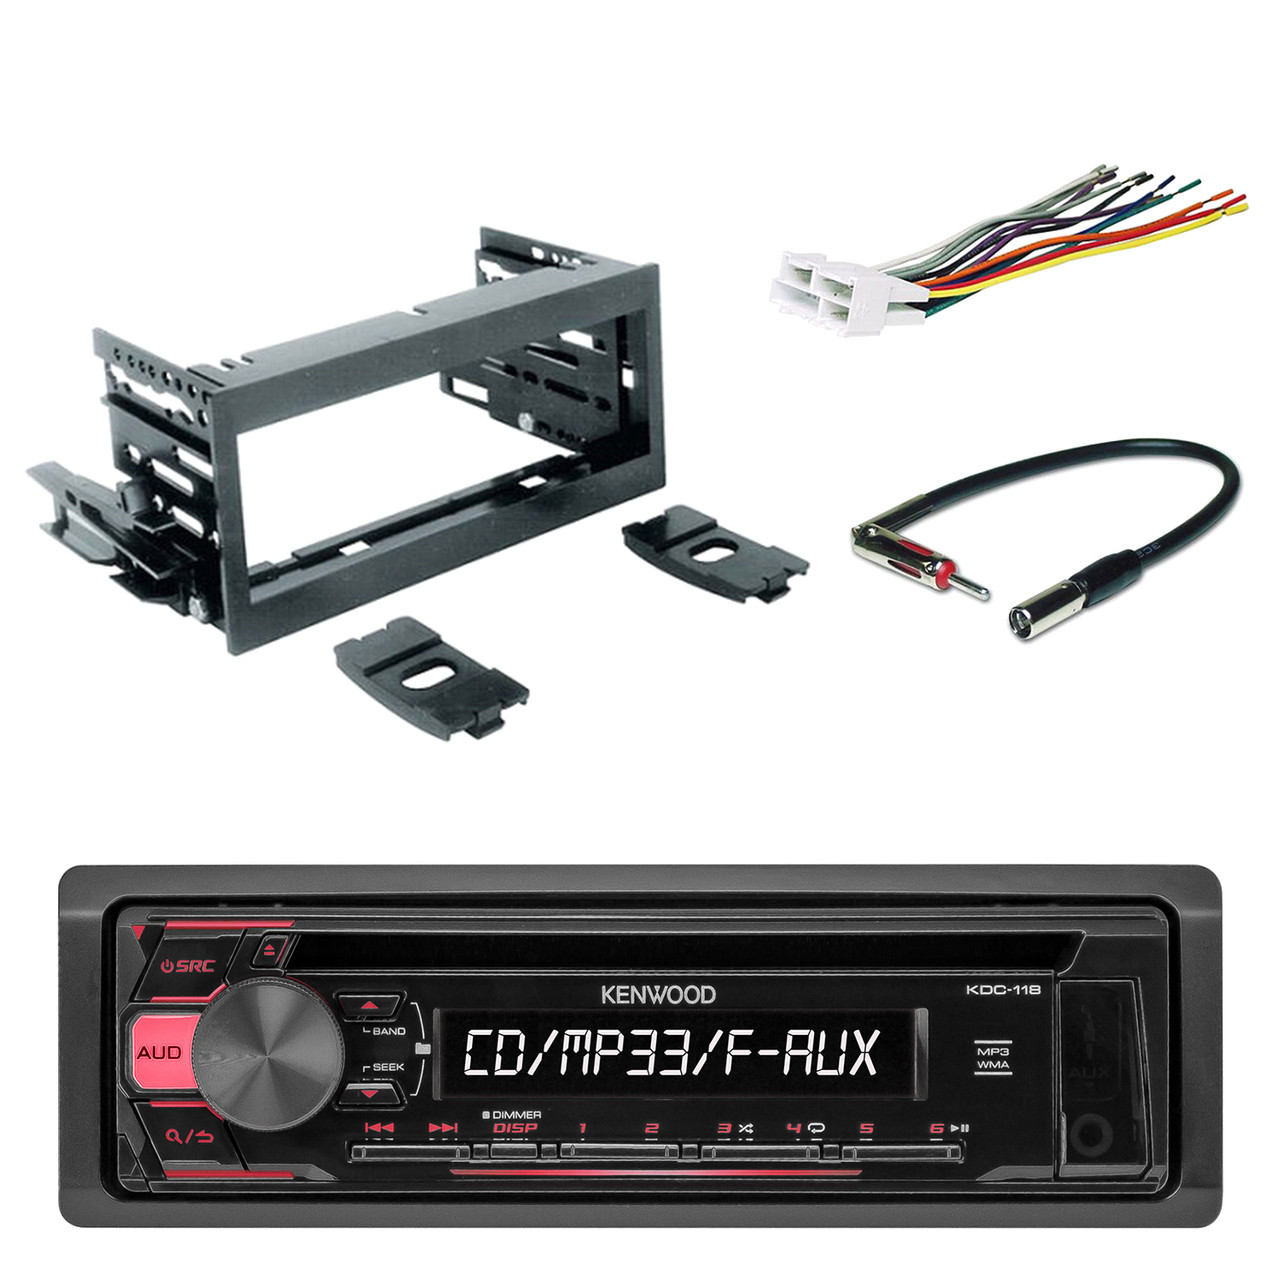 kenwood in-dash single-din cd player aux car stereo receiver with scosche  dash kit, scosche gm micro/delco antenna adapter and scosche radio wiring  harness